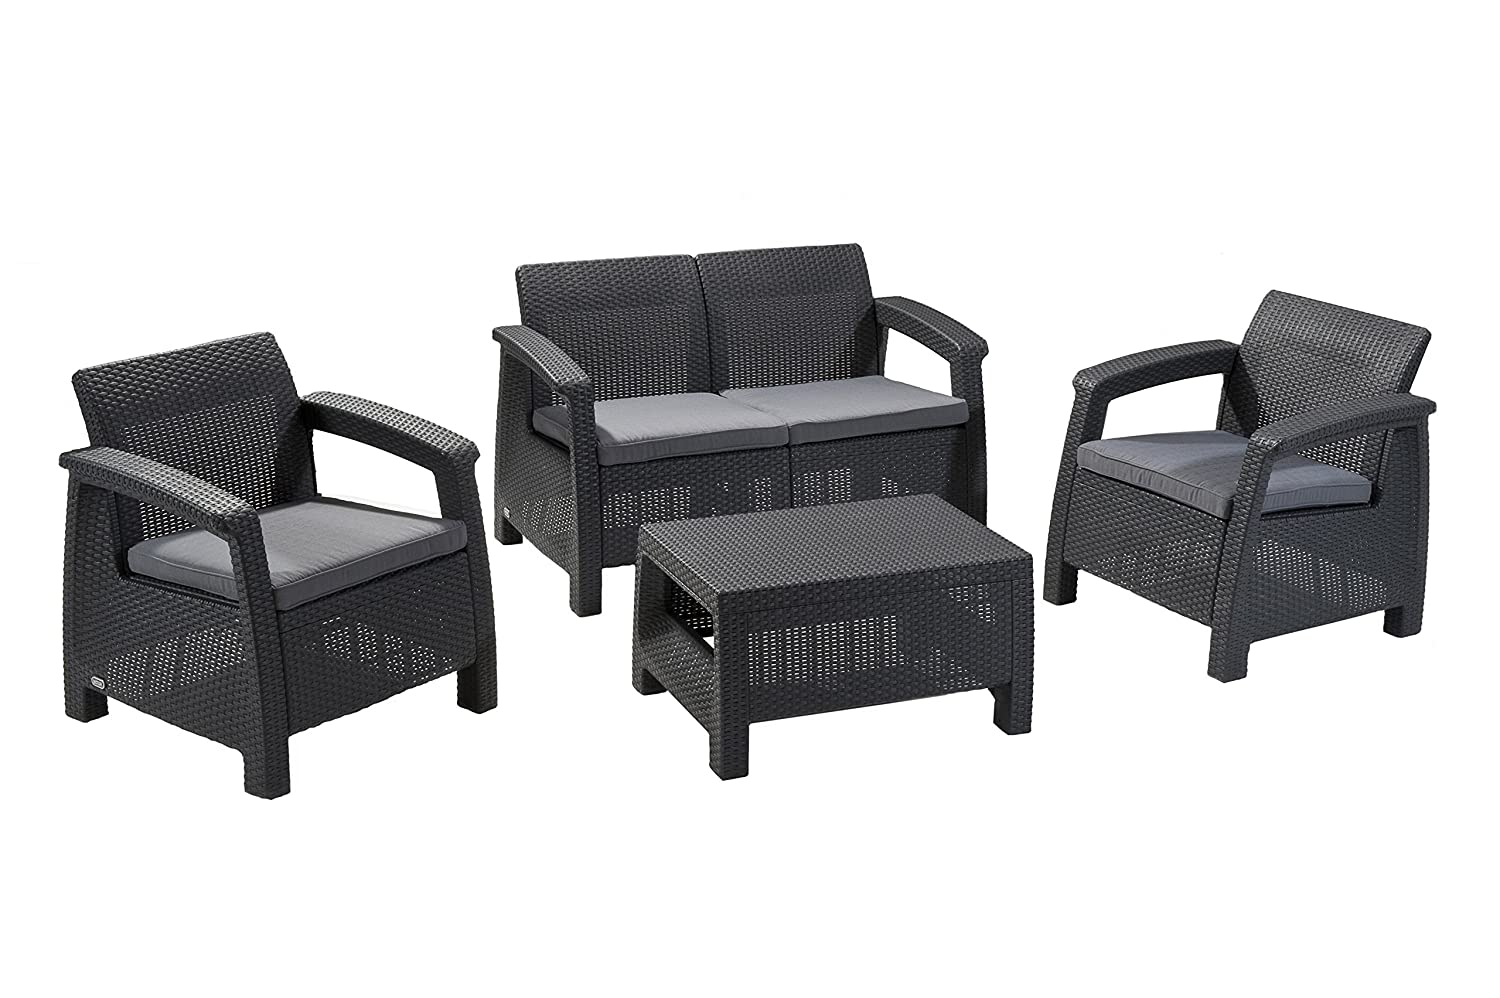 amazoncom keter corfu 4 piece set all weather outdoor patio garden furniture w cushions charcoal garden outdoor